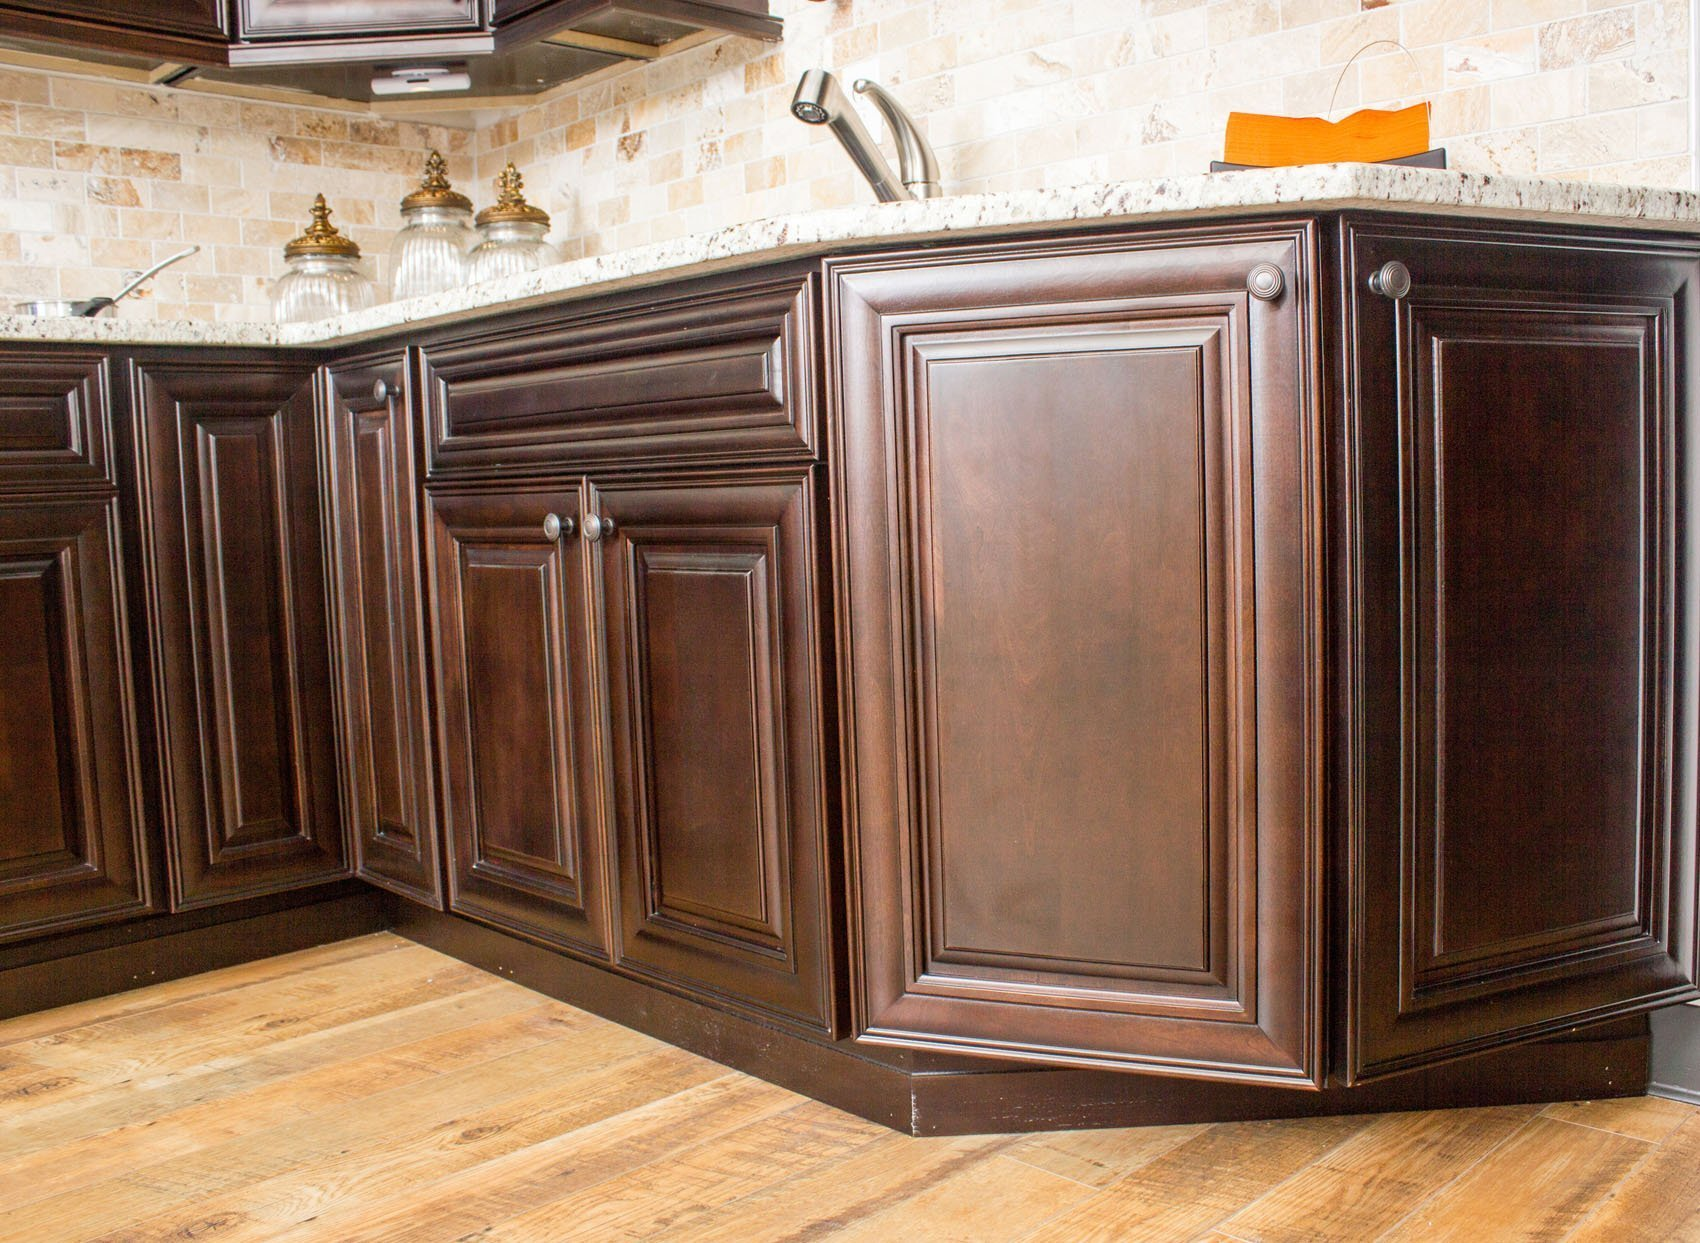 Awesome national kitchen u bath cabinetry inc concord nc dark chocolate  with chocolate cabinets Chocolate Cabinets  Stunning Nc Kitchen Cabinets York Chocolate  . National Kitchen And Bath Cabinetry. Home Design Ideas